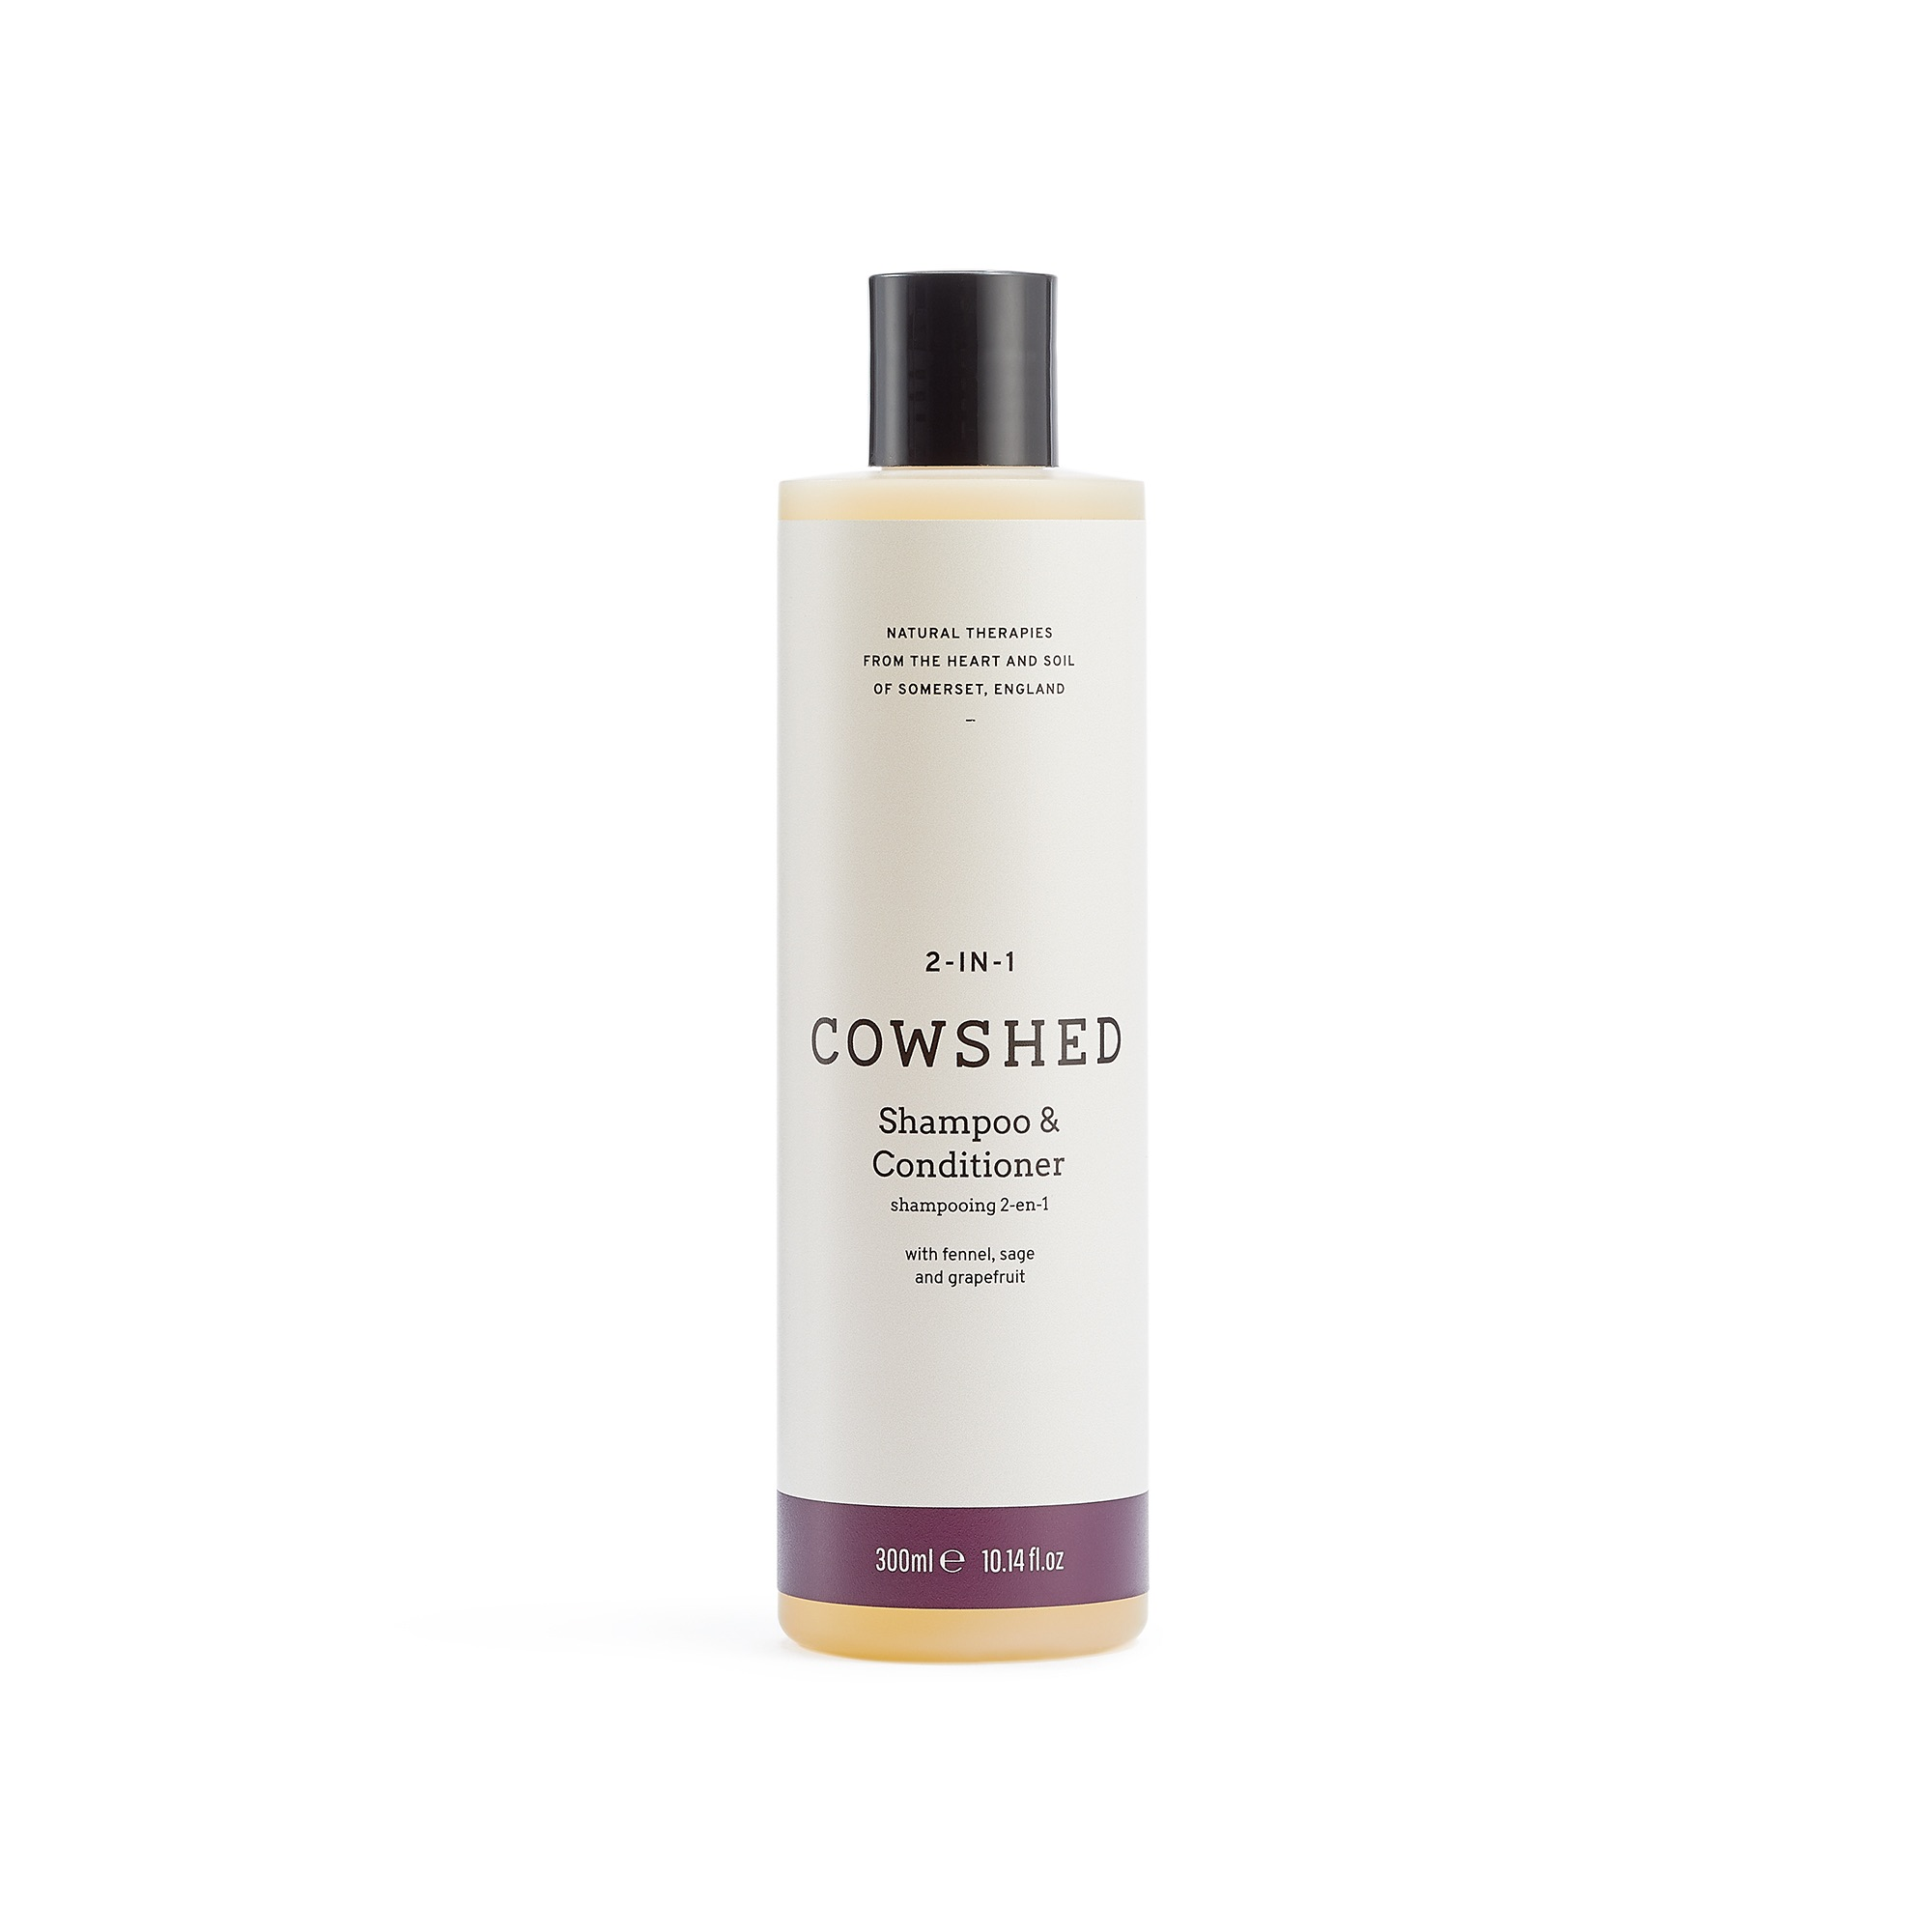 Cowshed 2-In-1 Shampoo & Conditioner (Bullocks 2-in-1 Shampoo & Conditioner) 10.5oz (300ml)